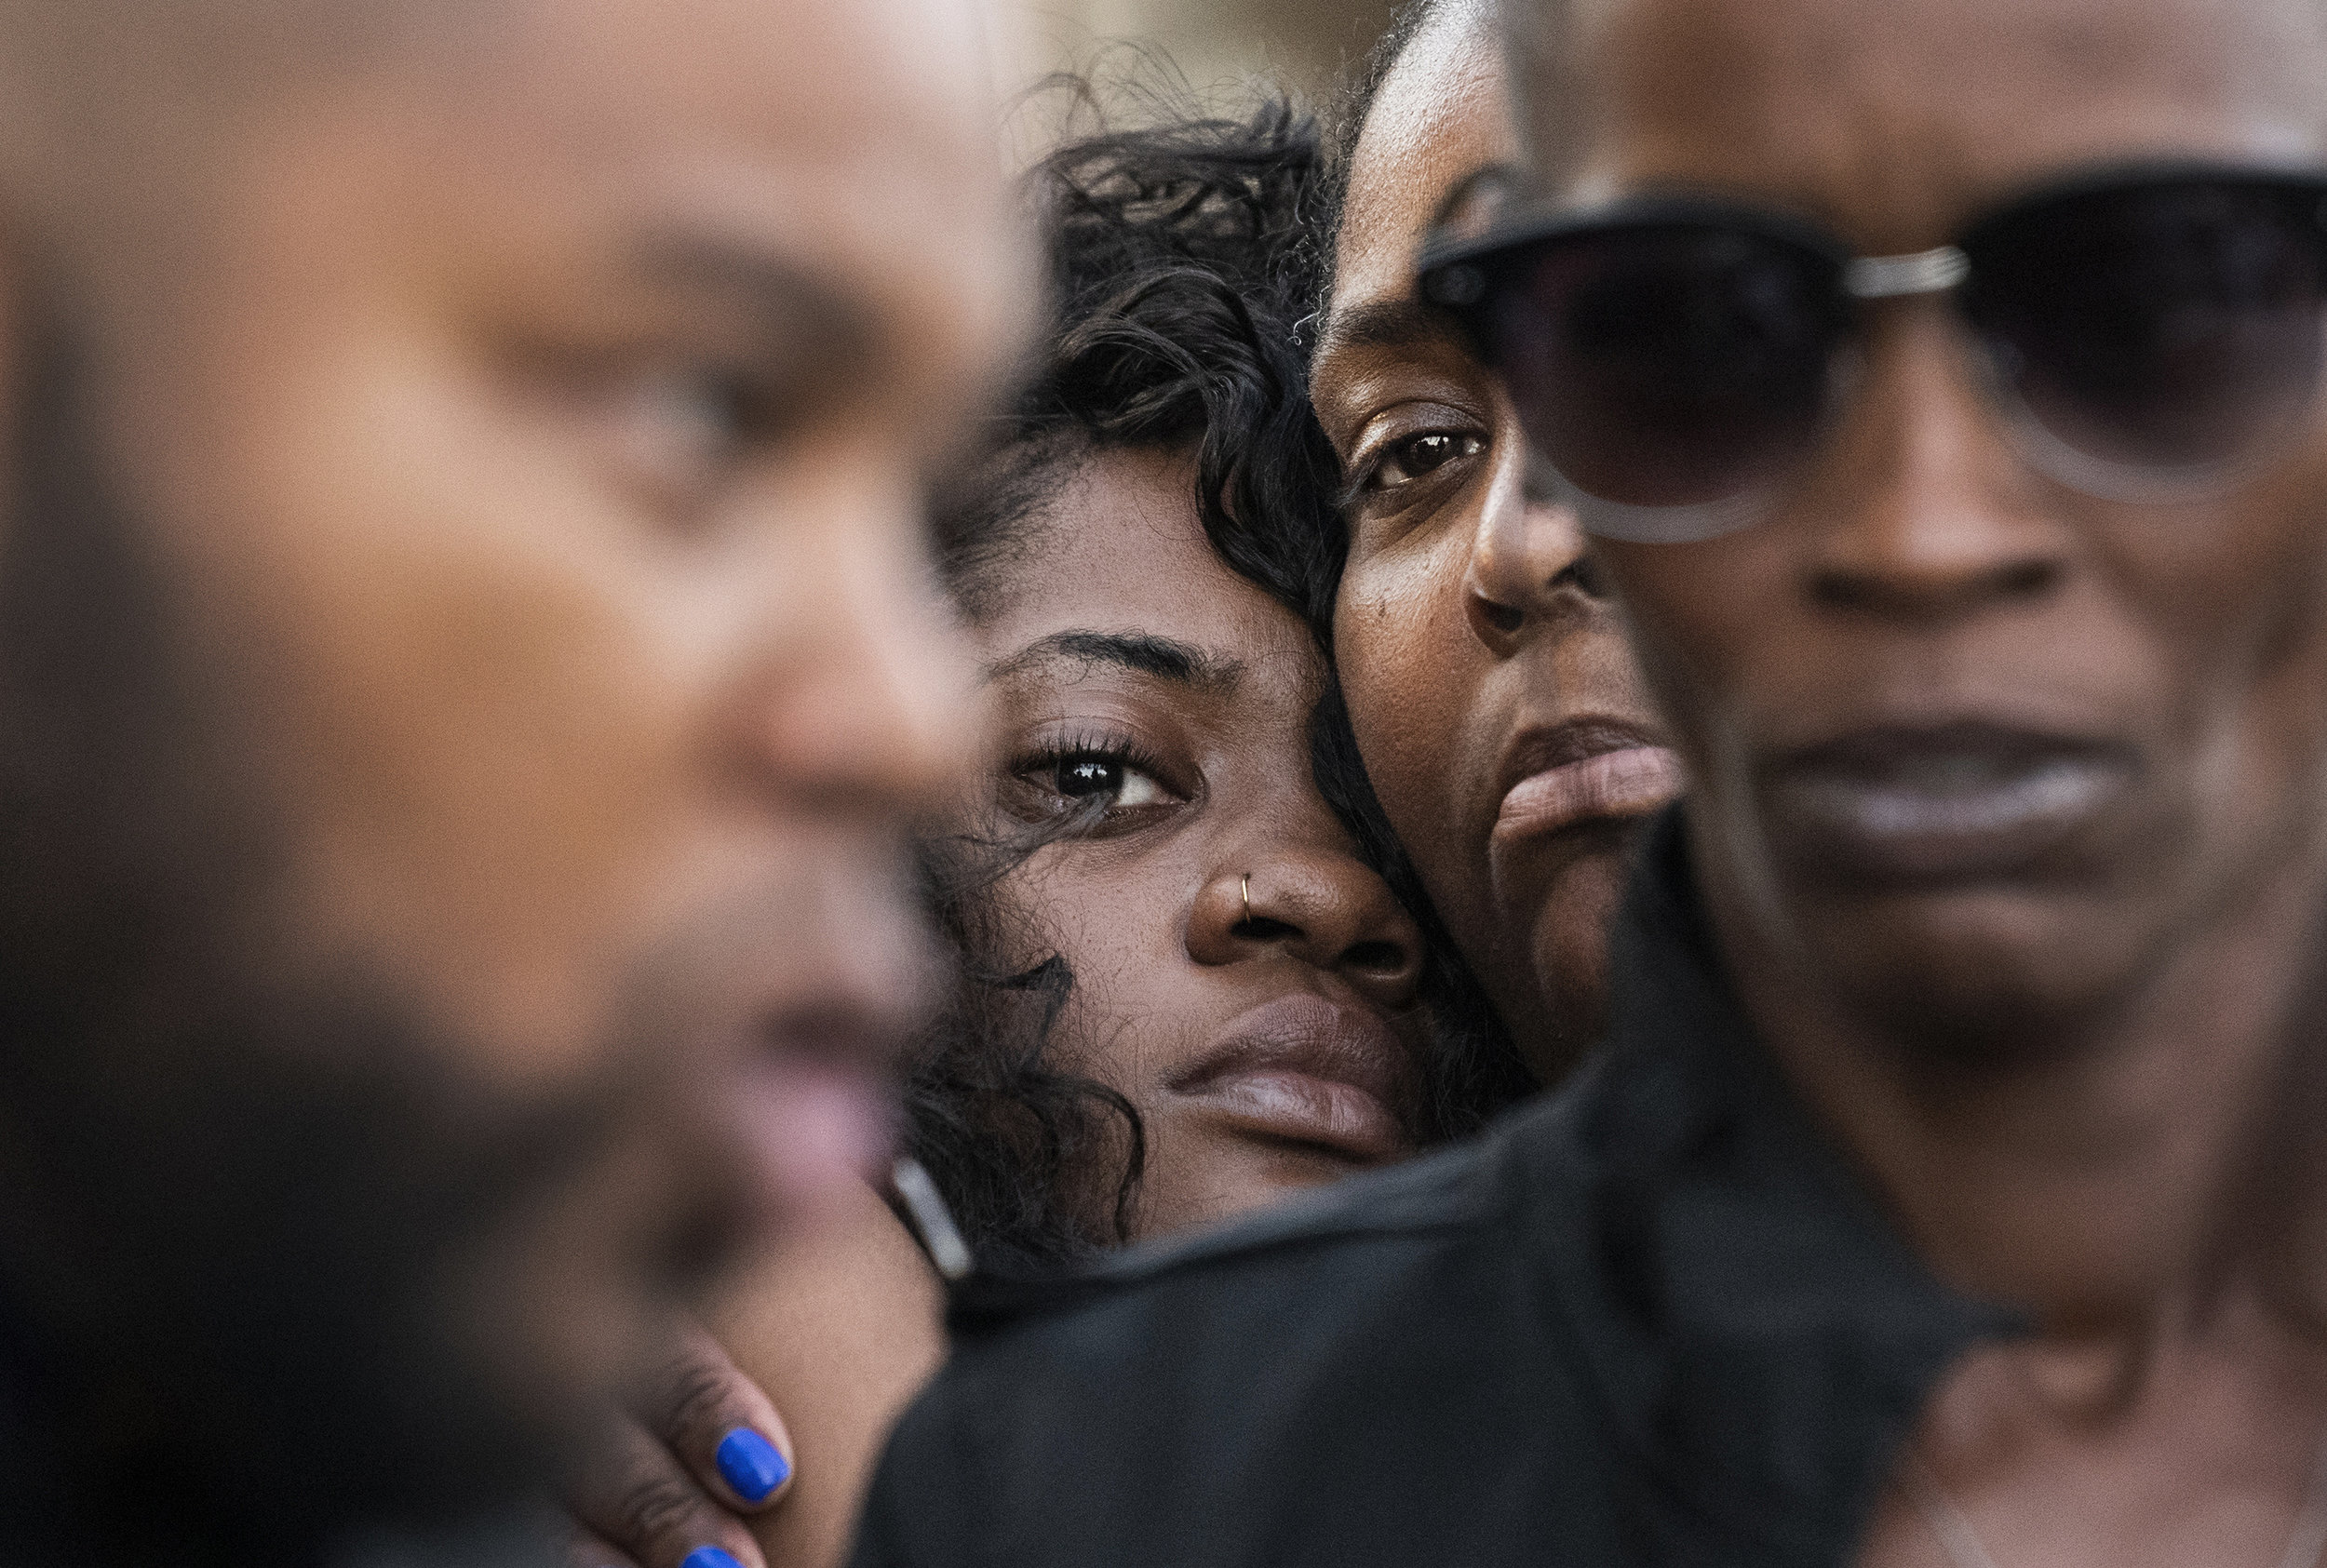 Friends, family, and community members comfort each other as they gather for a vigil for Guy Alford III, 20, who was shot and killed in a drive-through fast food restaurant the two nights before In Long Beach September 27, 2018.